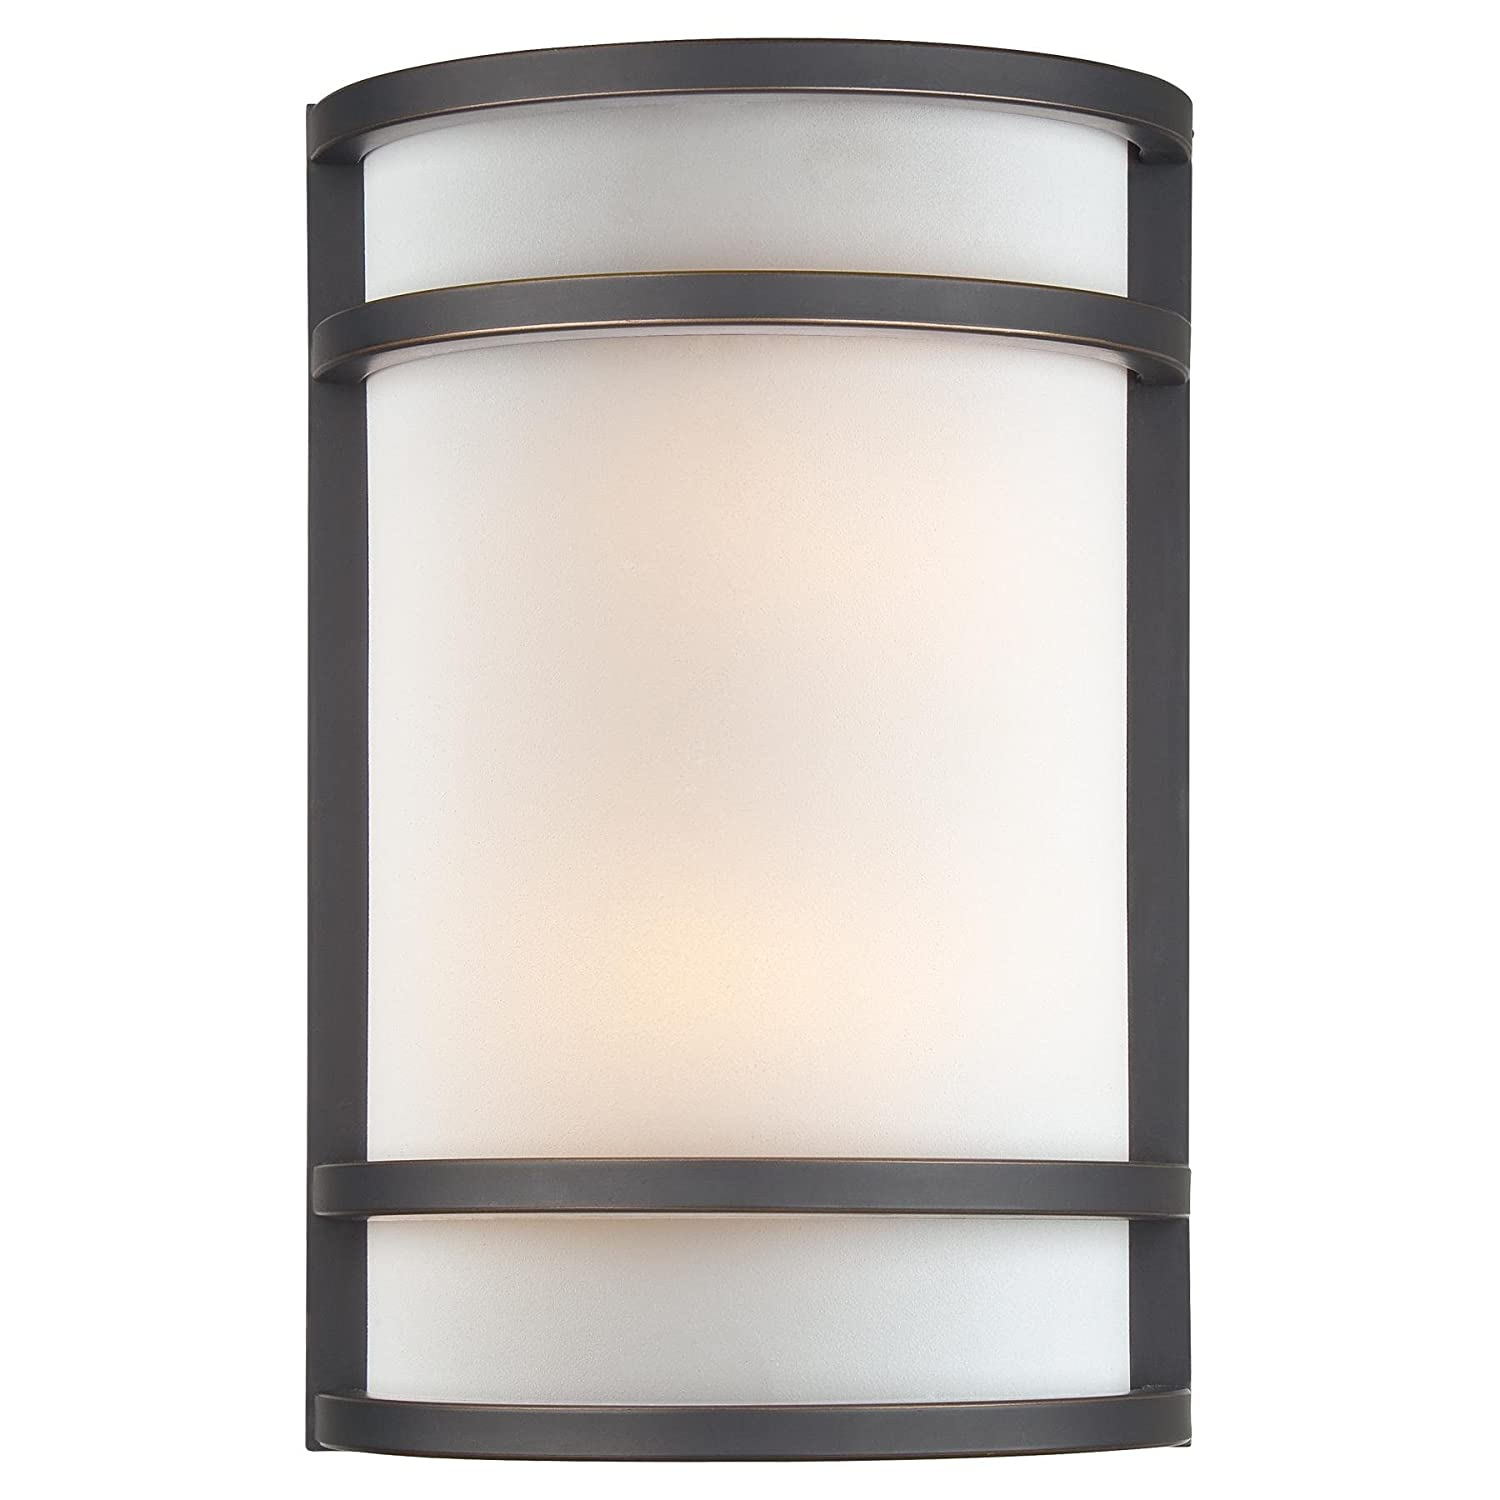 lighting sconce chrome item glass wall new capitol inch sconces finish and shown firewall tech cfm fire wide in amber